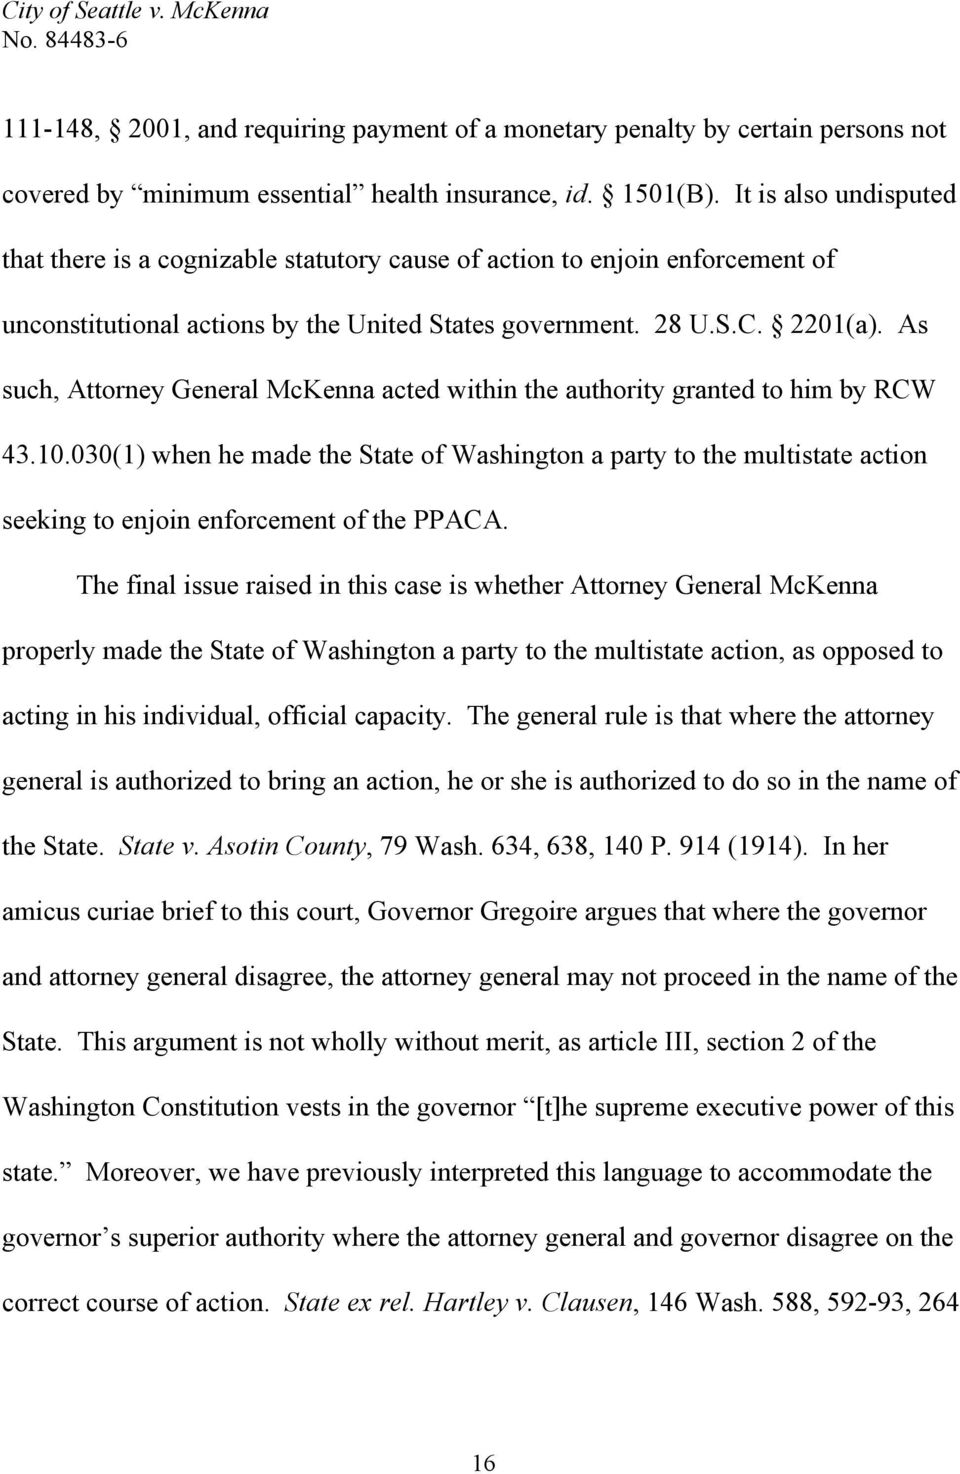 As such, Attorney General McKenna acted within the authority granted to him by RCW 43.10.